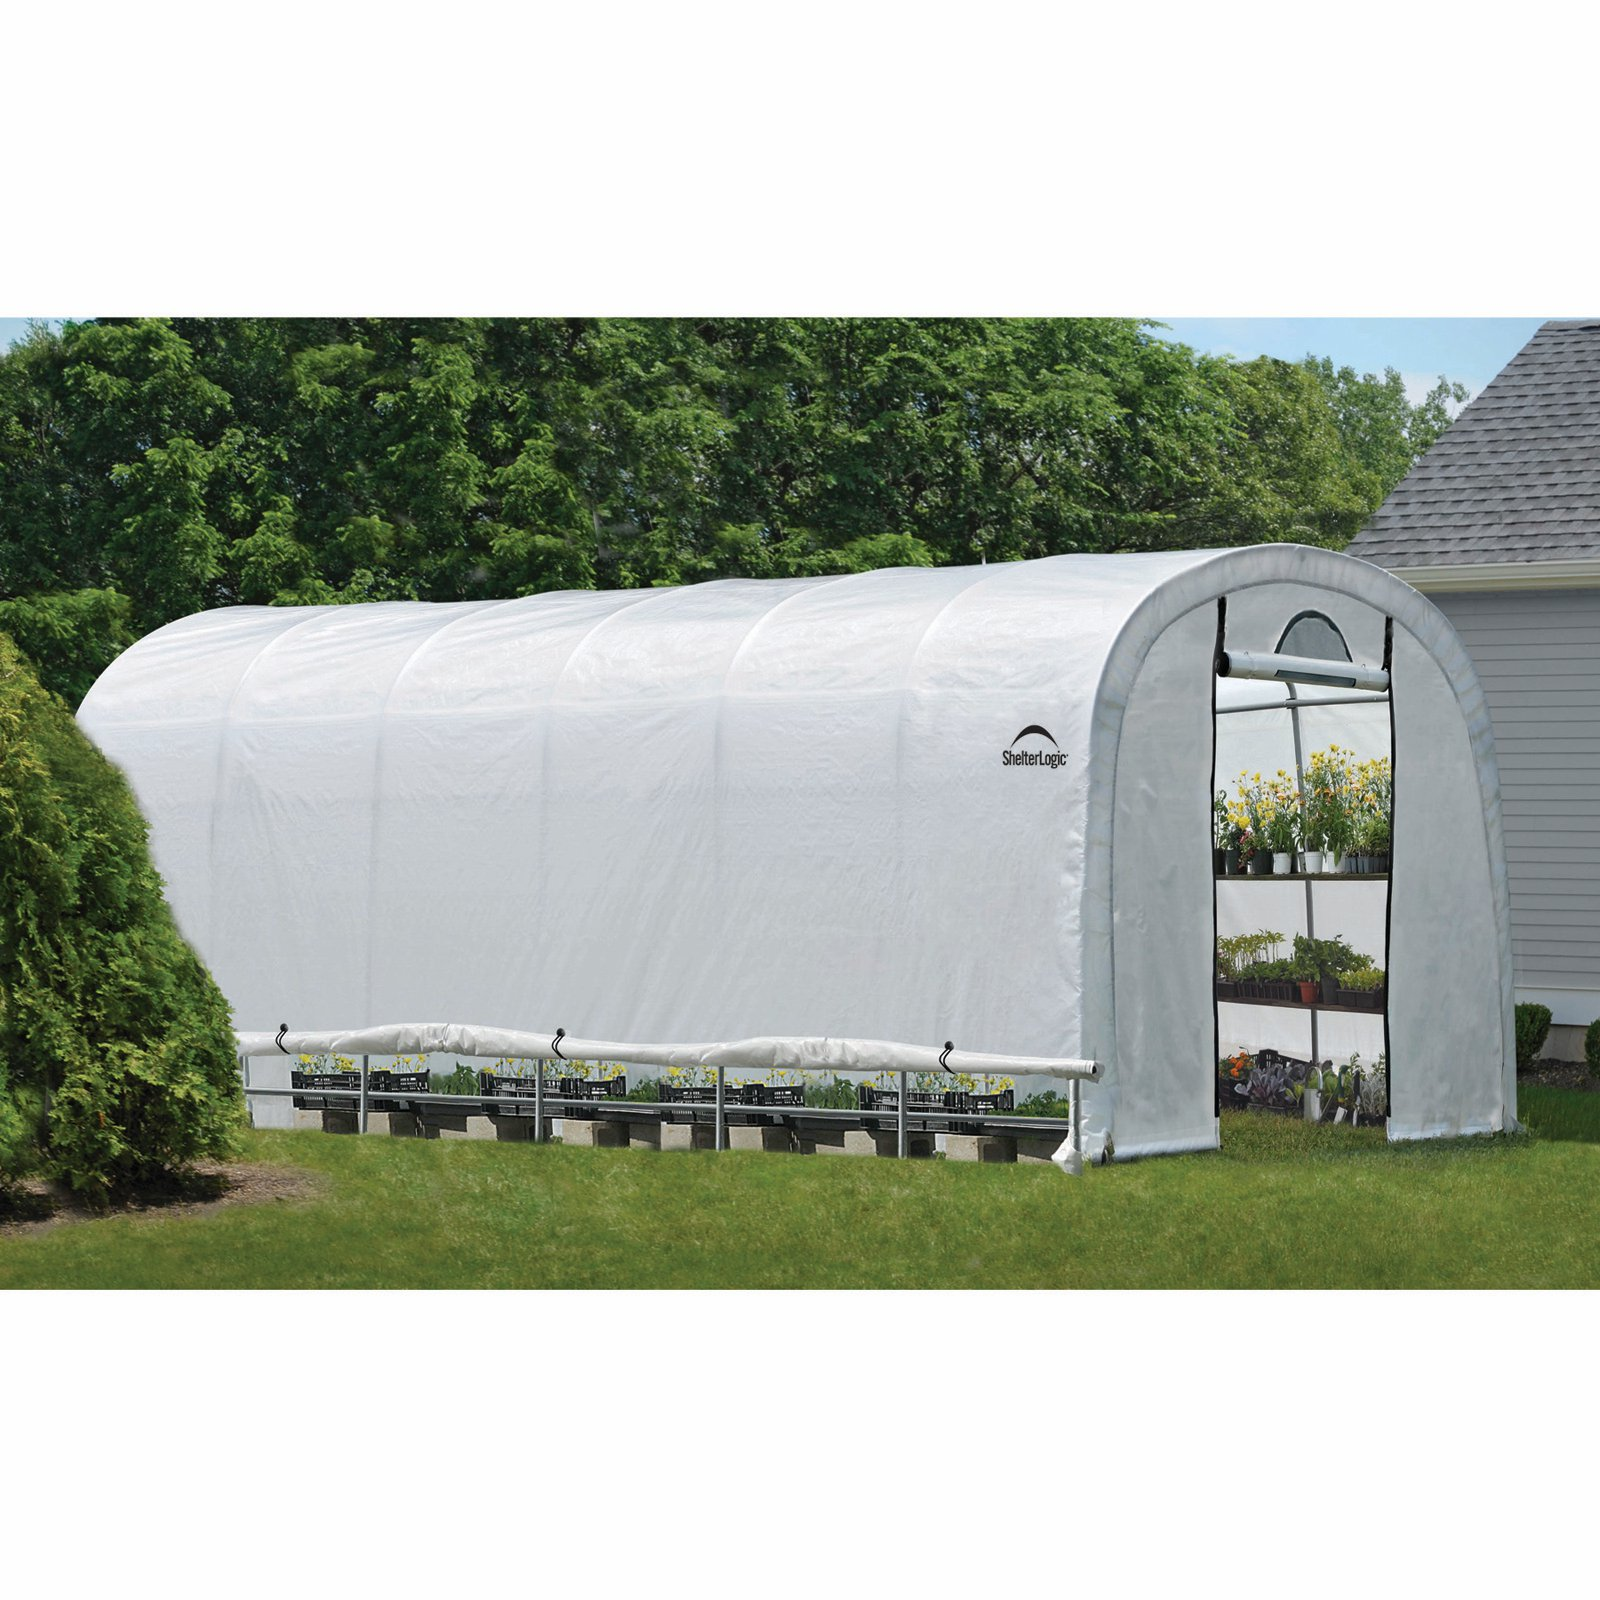 GrowIt Heavy Duty Walk-Thru Greenhouse Round-Style, 12' x 24' x 8'